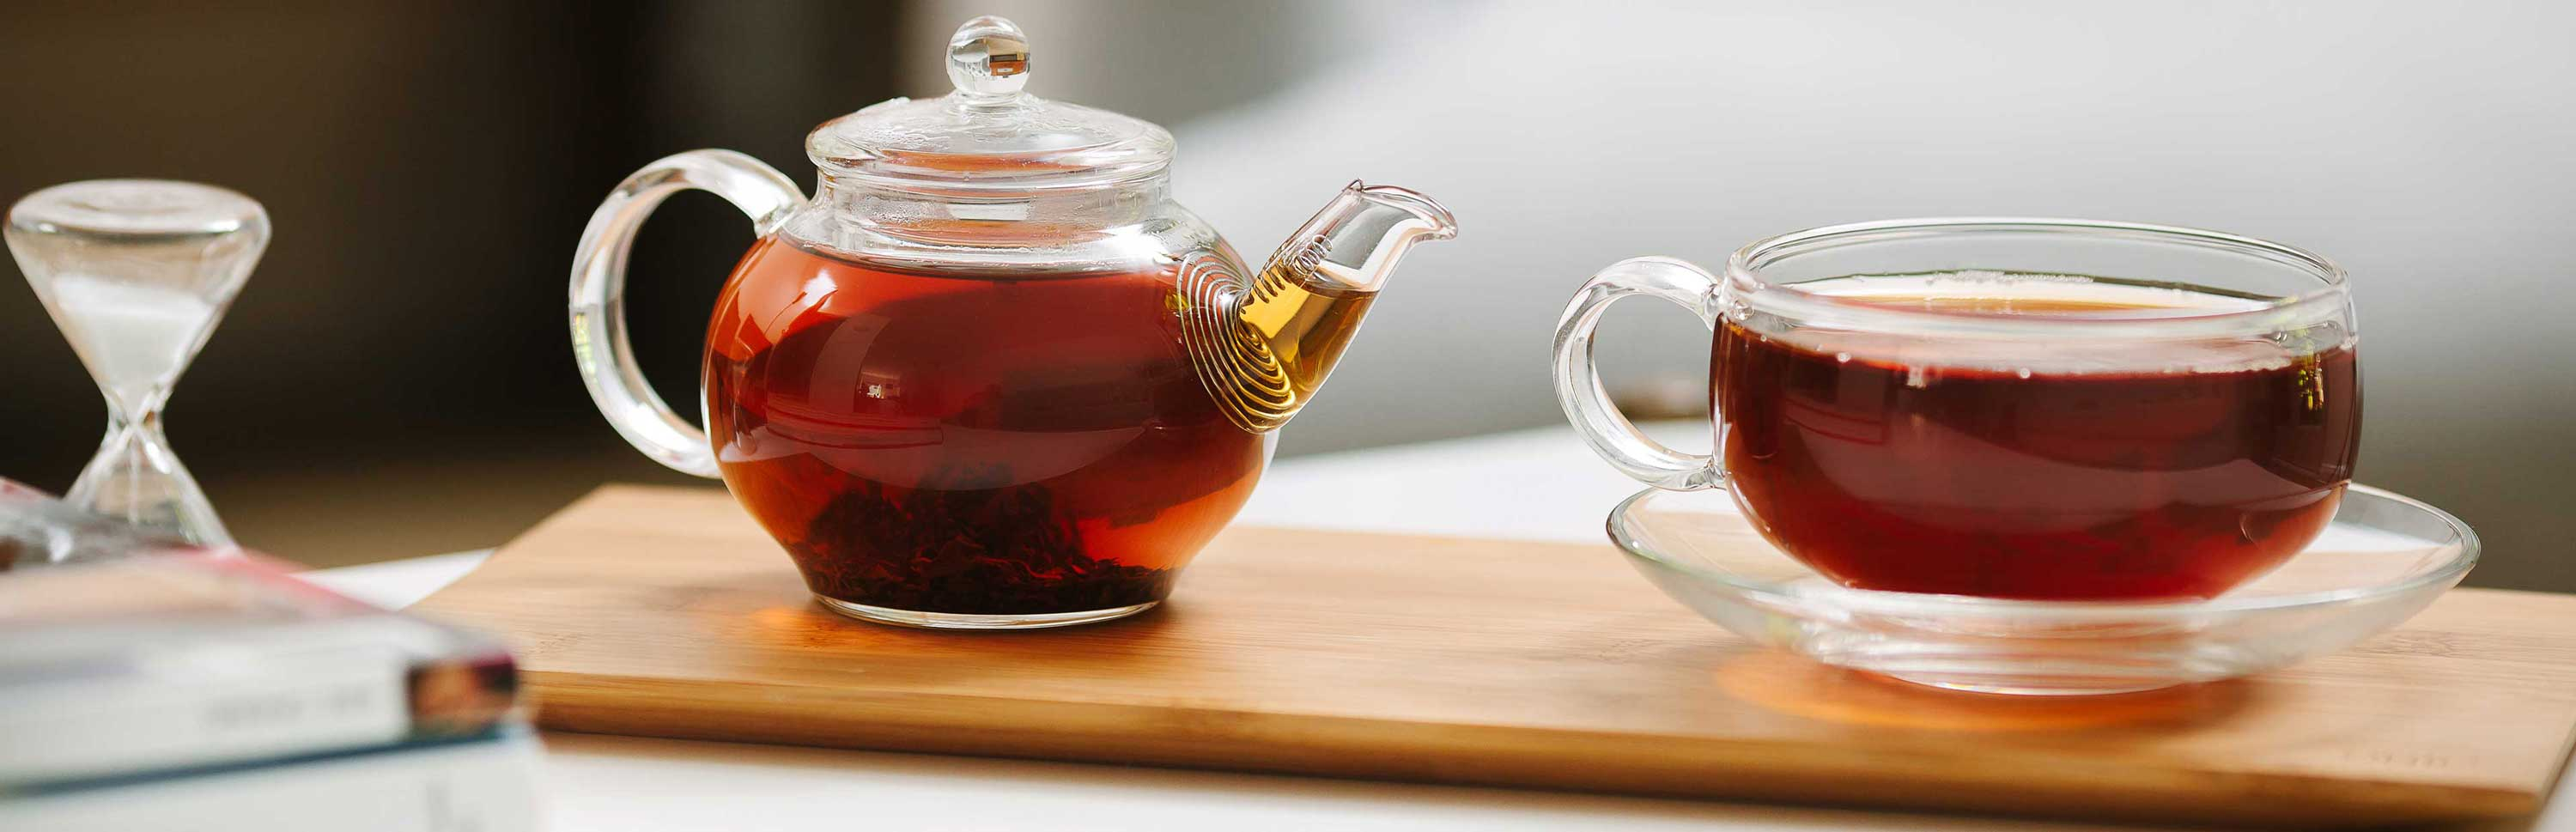 Glass Teapot on Bamboo Wooden Tray